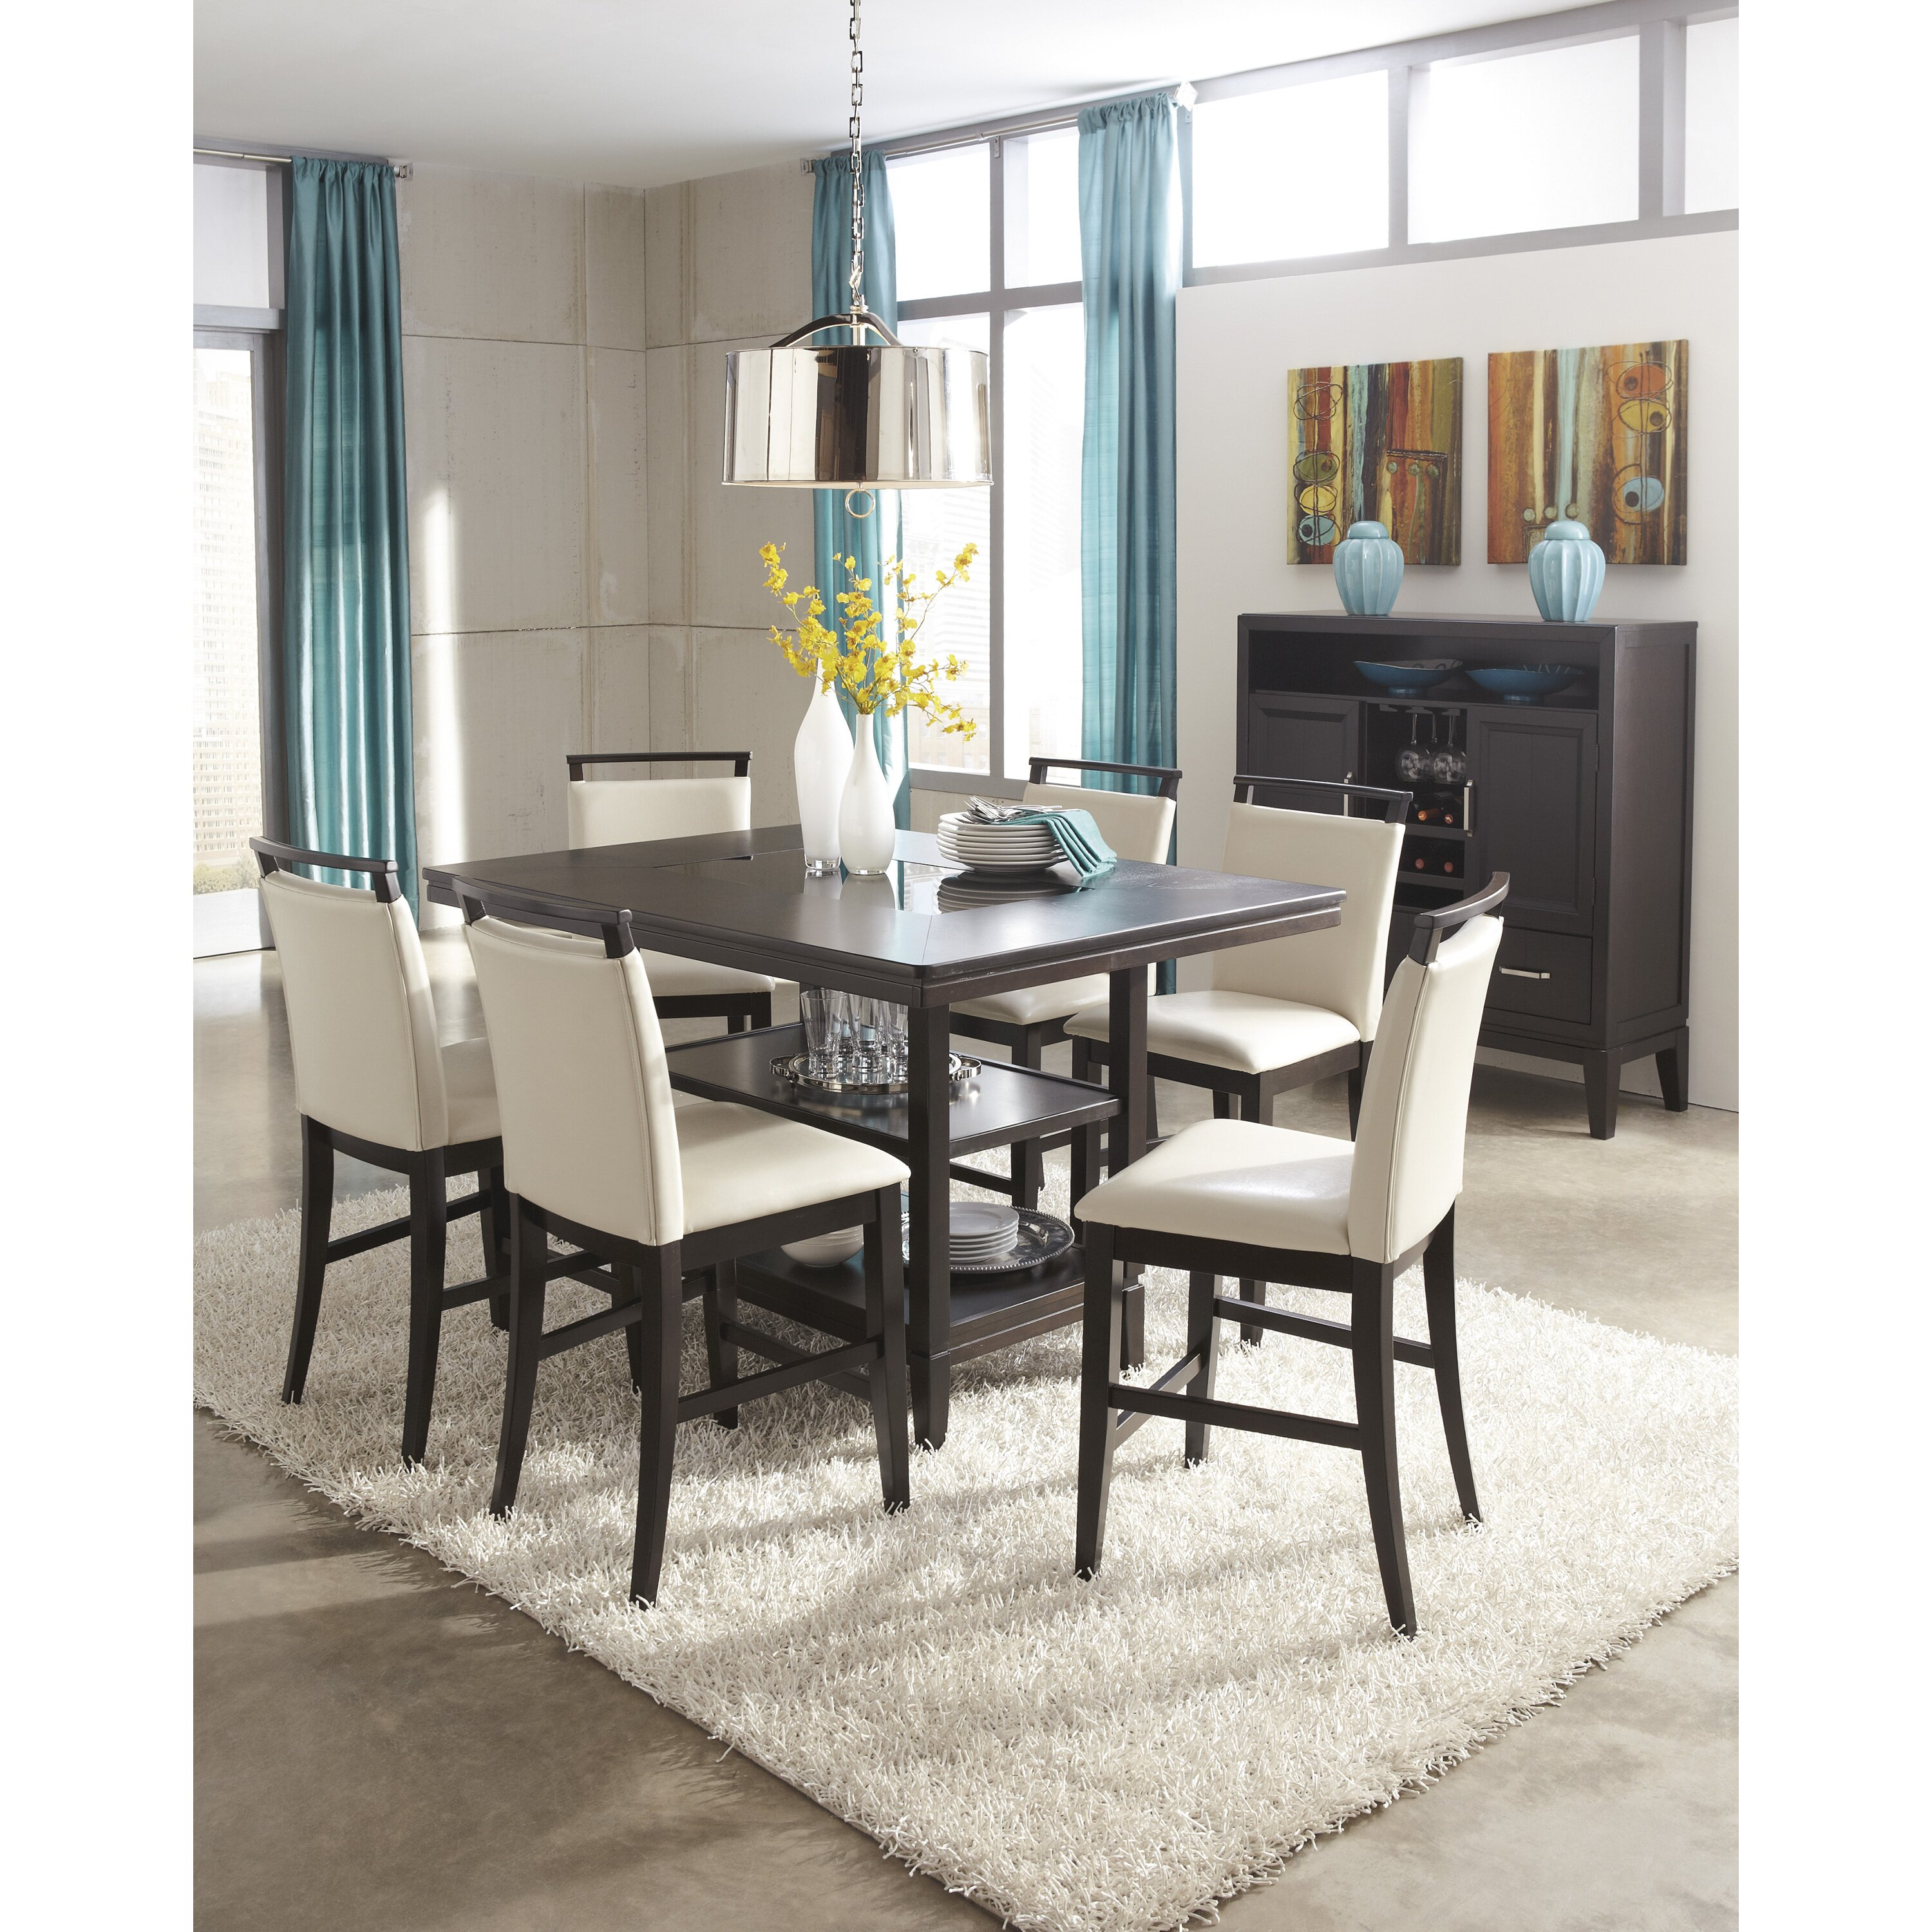 Tall Dining Table: Signature Design By Ashley Trishelle Counter Height Dining